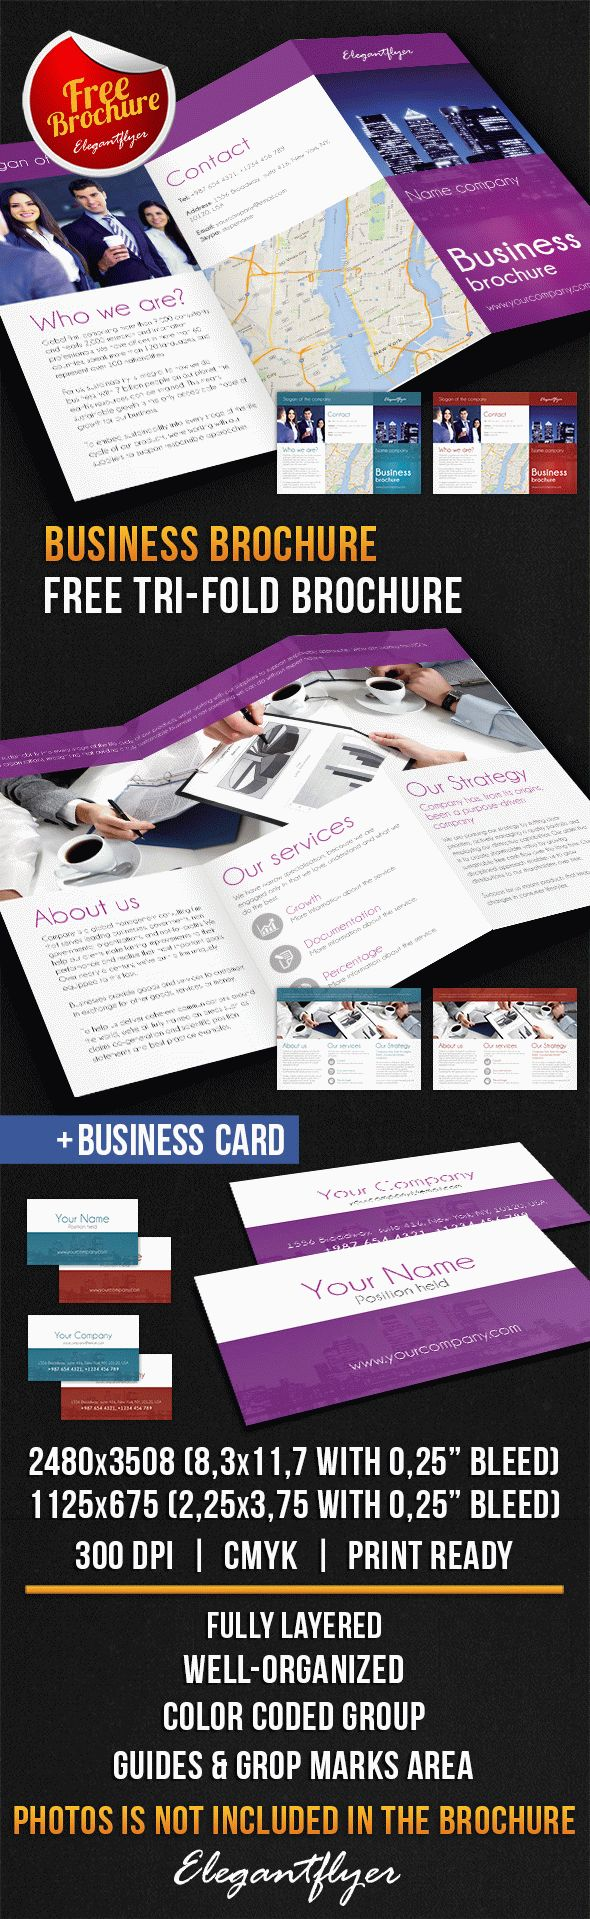 Business tri fold brochure free psd template by for Business brochure templates free